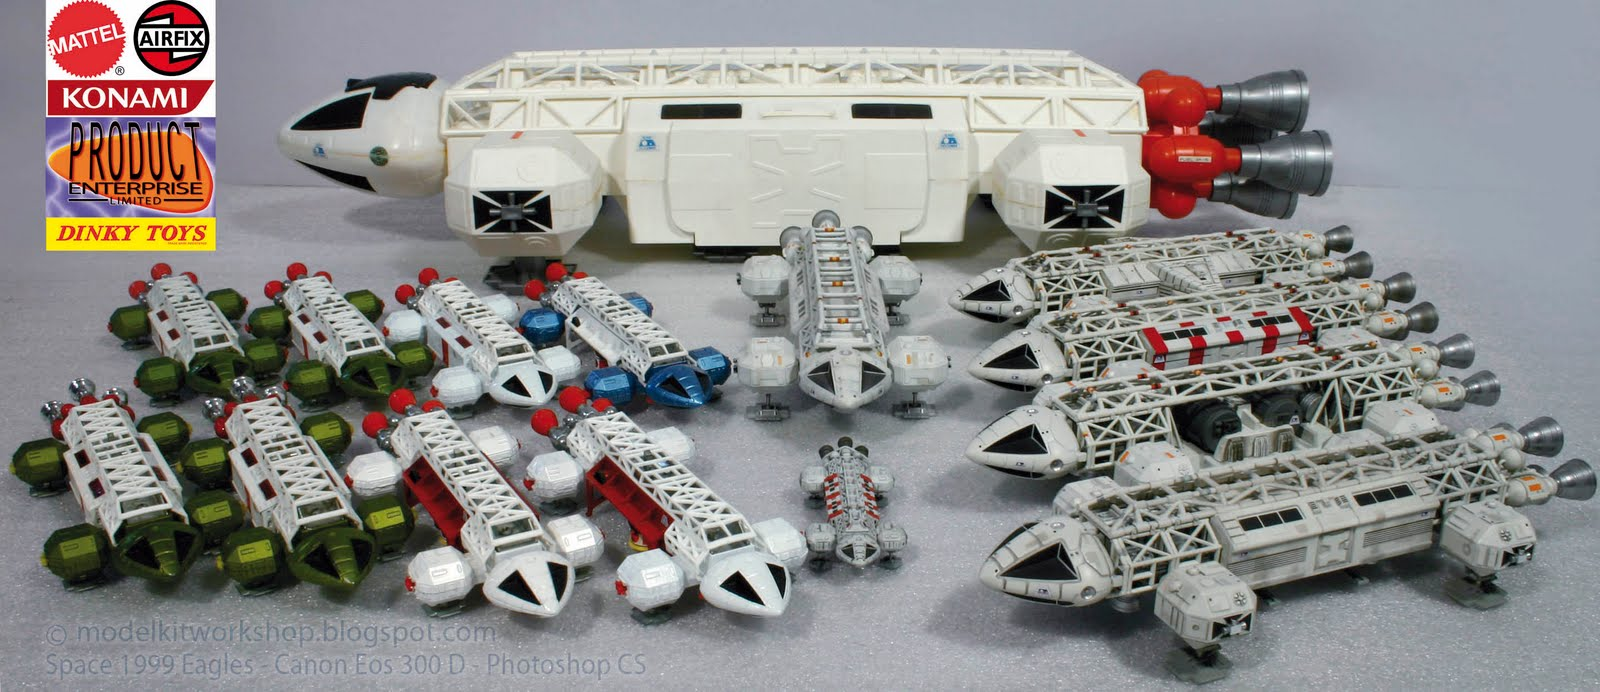 Image result for space 1999 eagle toy